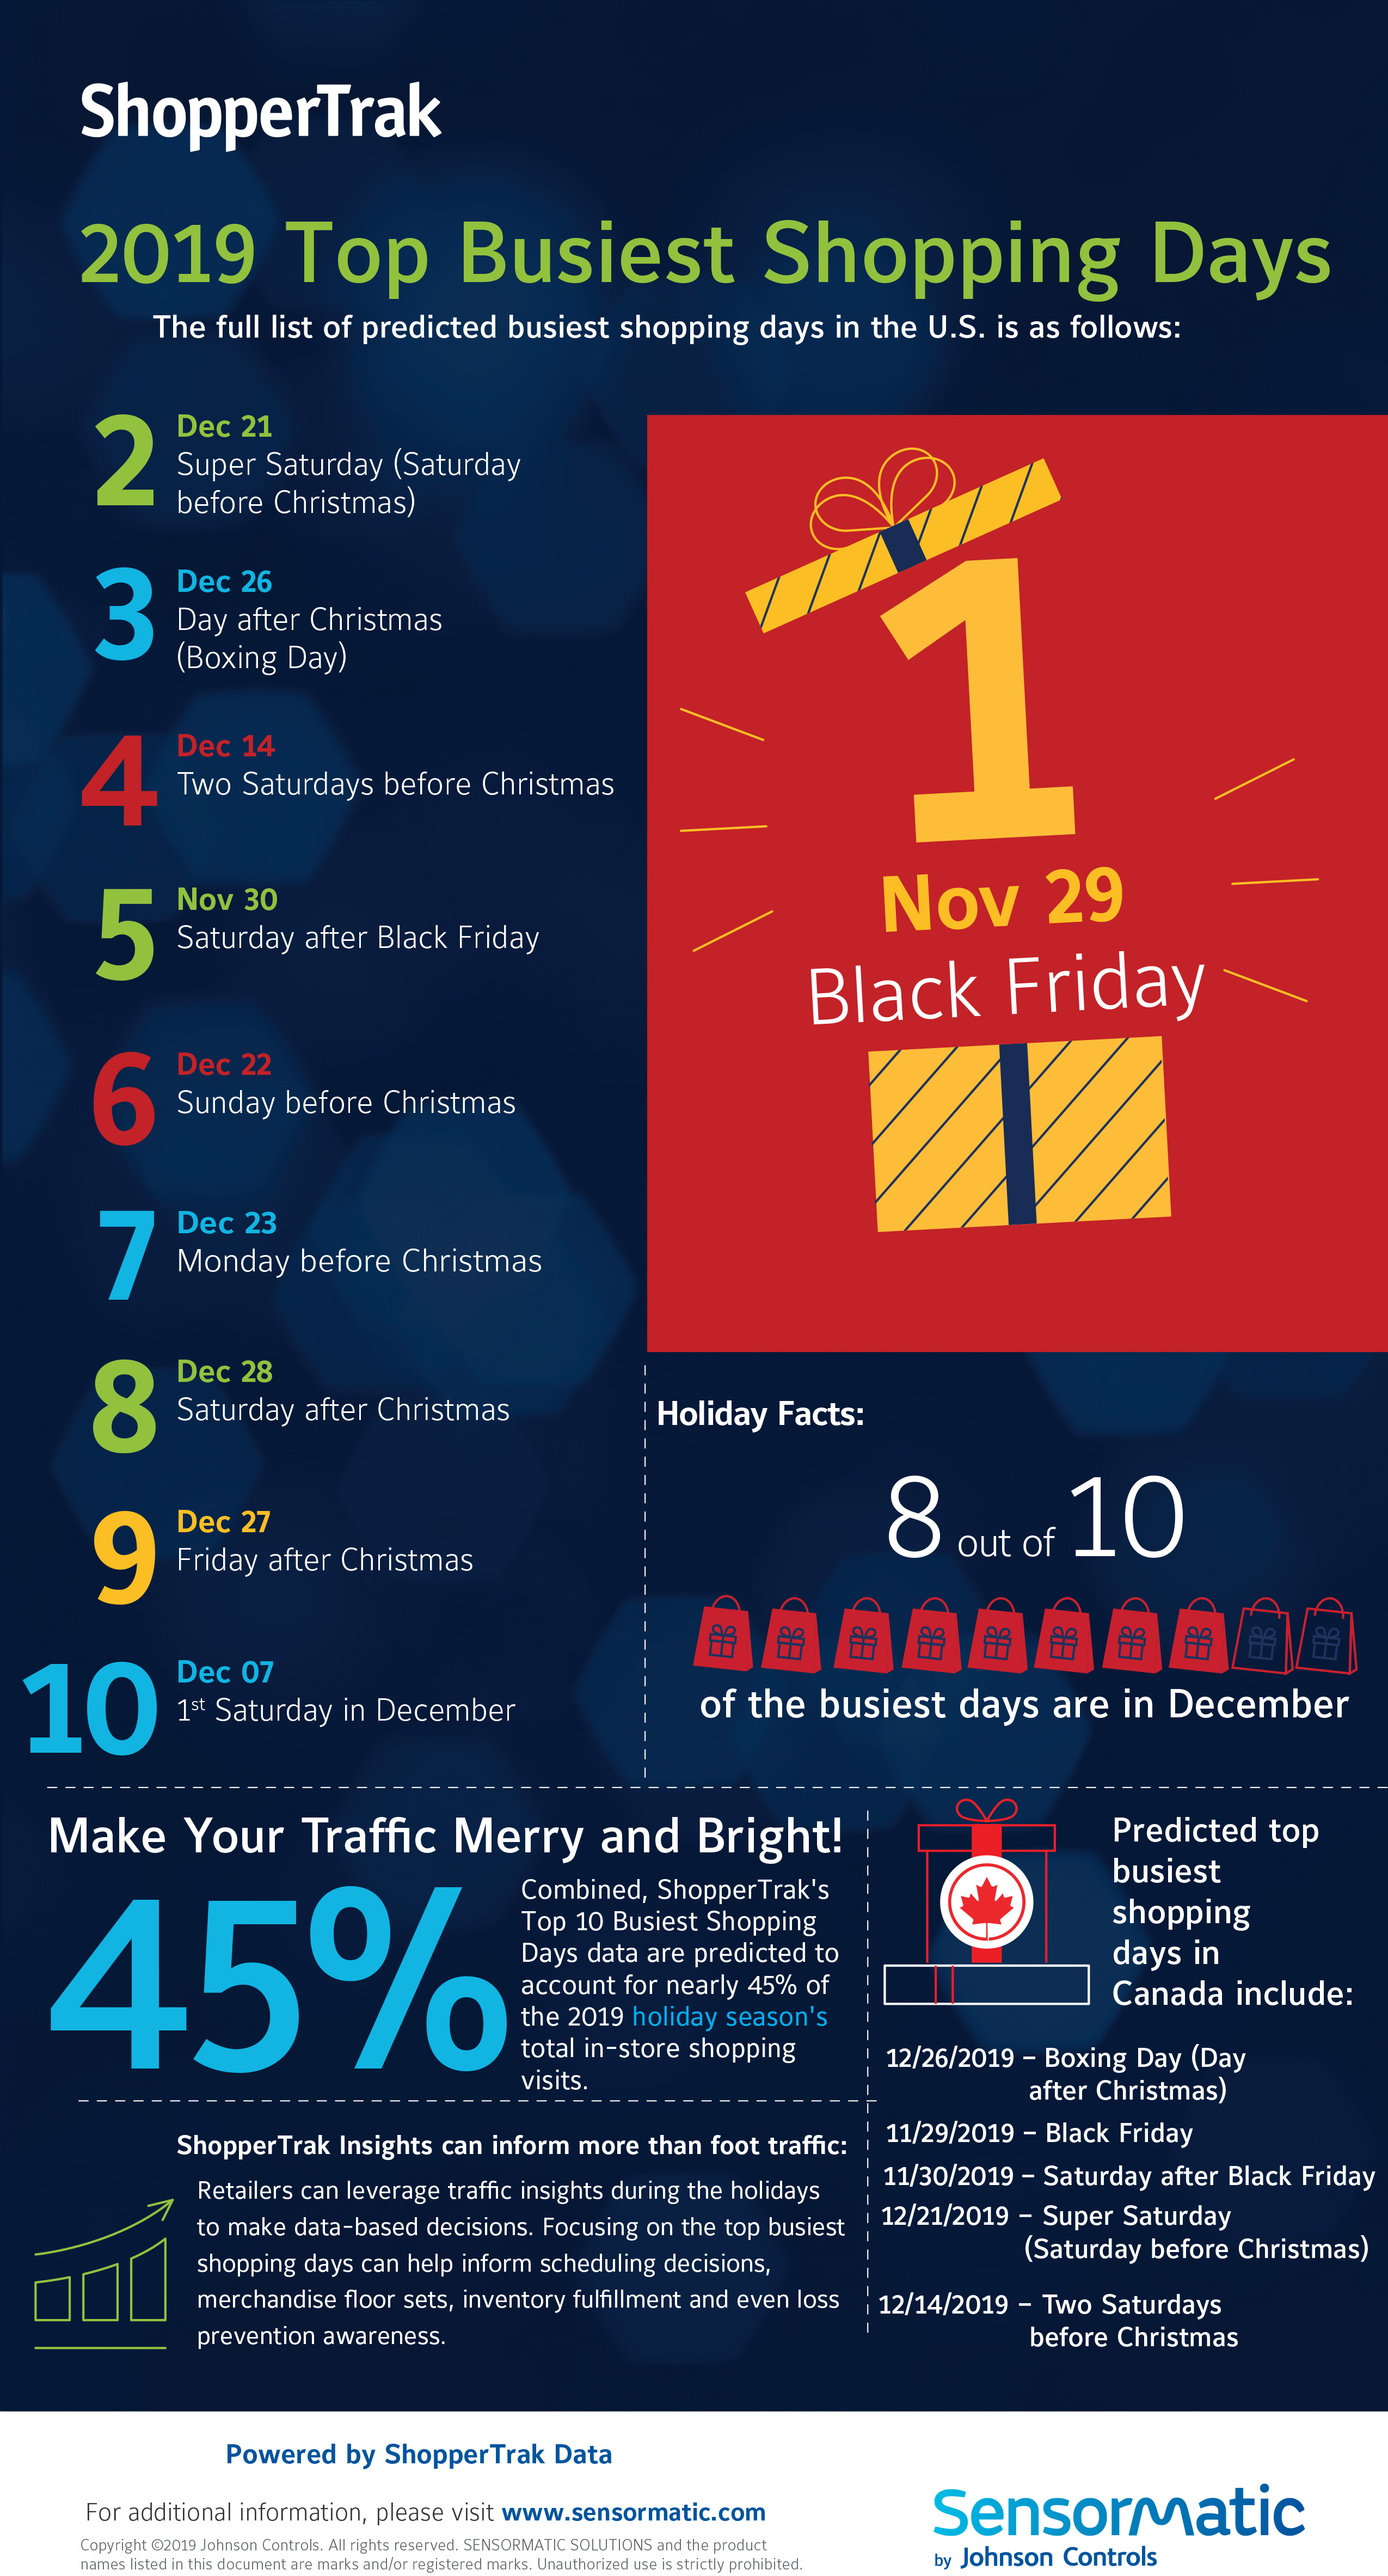 Christmas Graphics 2019.Sensormatic Solutions Predicts The Top Busiest Holiday